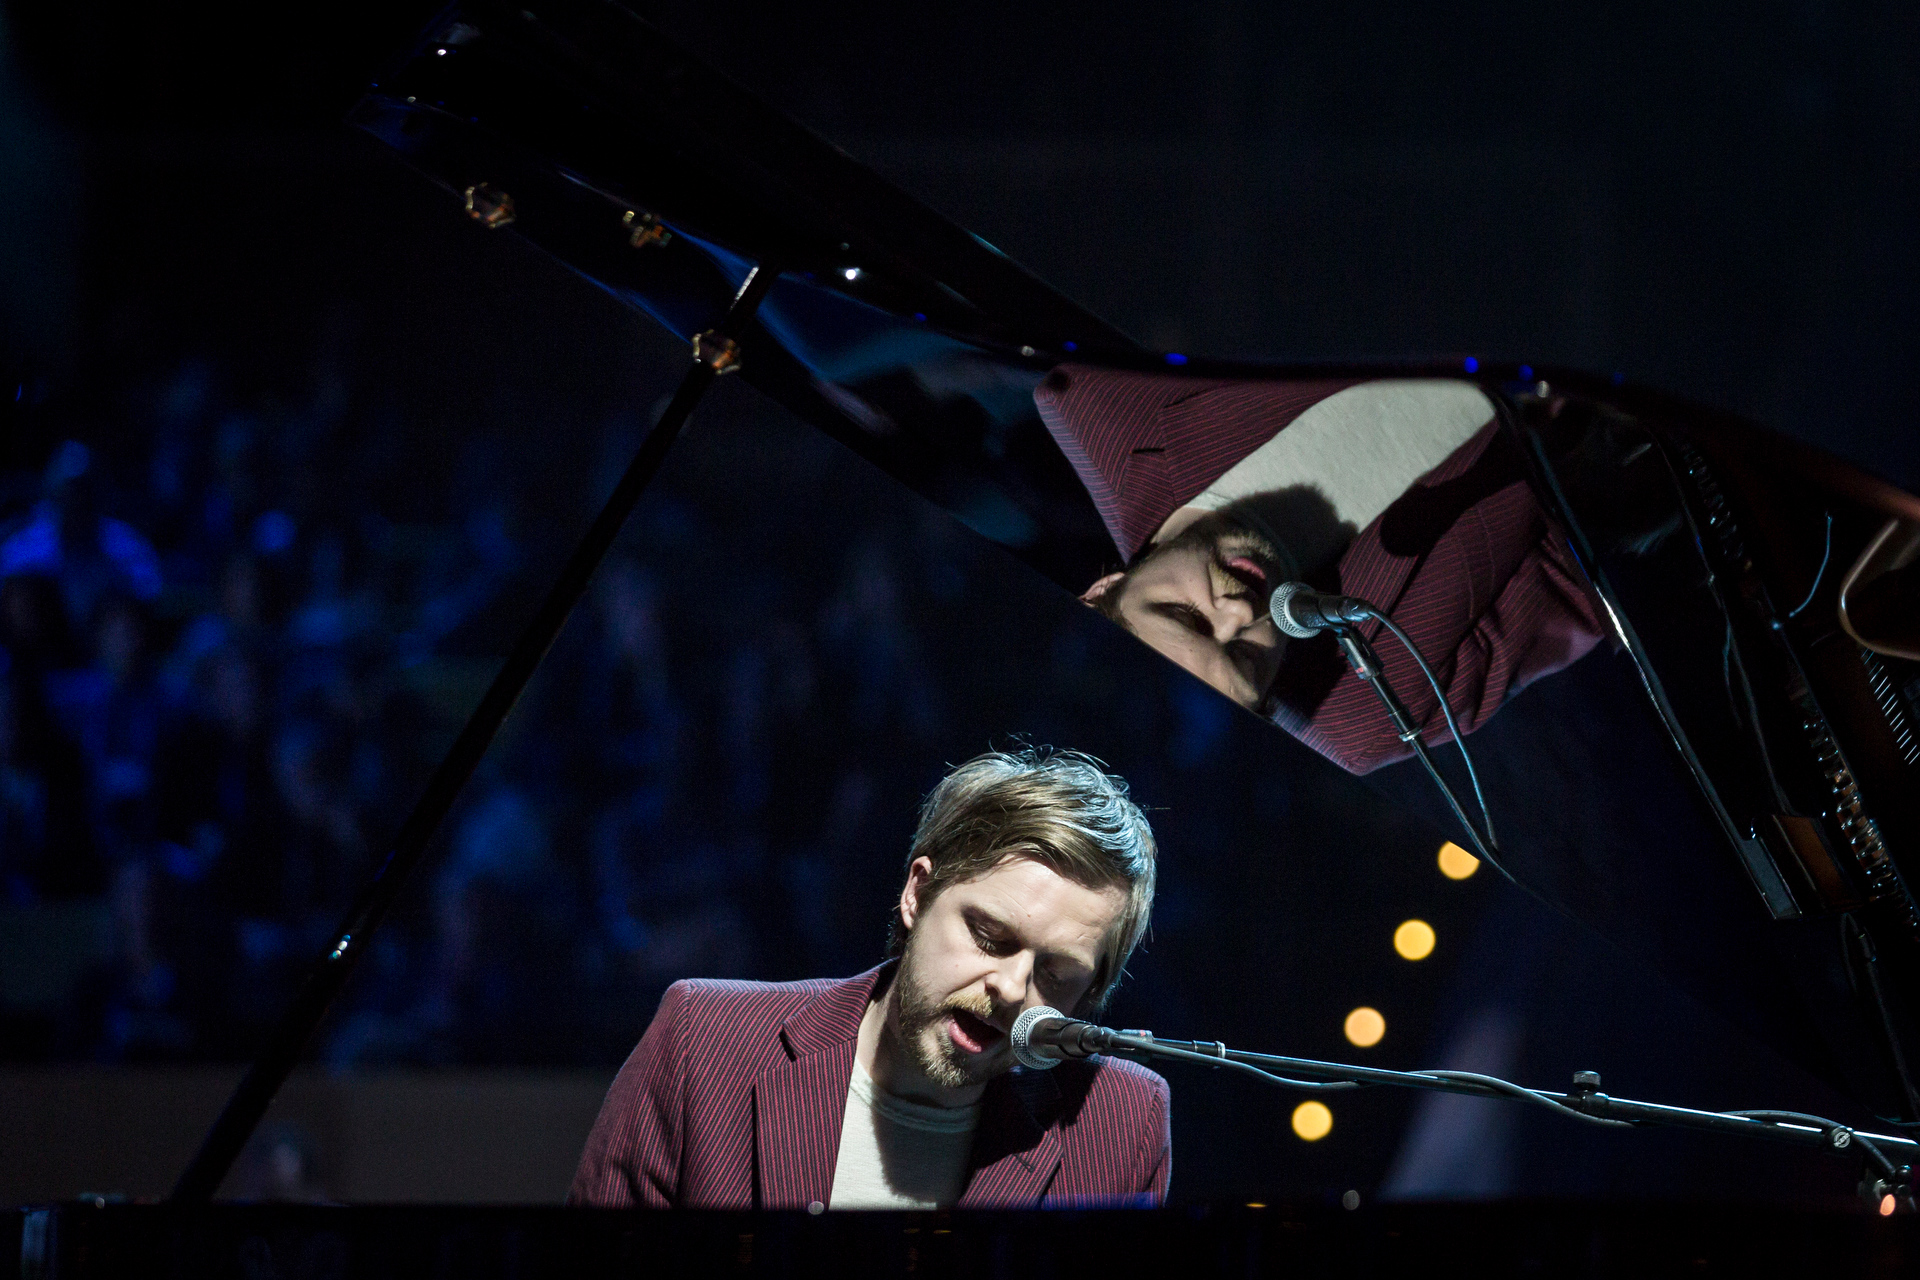 """Teitur plays """"Home,"""" a simple tune: """"Home is the sound of birds early in the morning / Home is the song I always remembered."""" Photo: Bret Hartman/TED"""